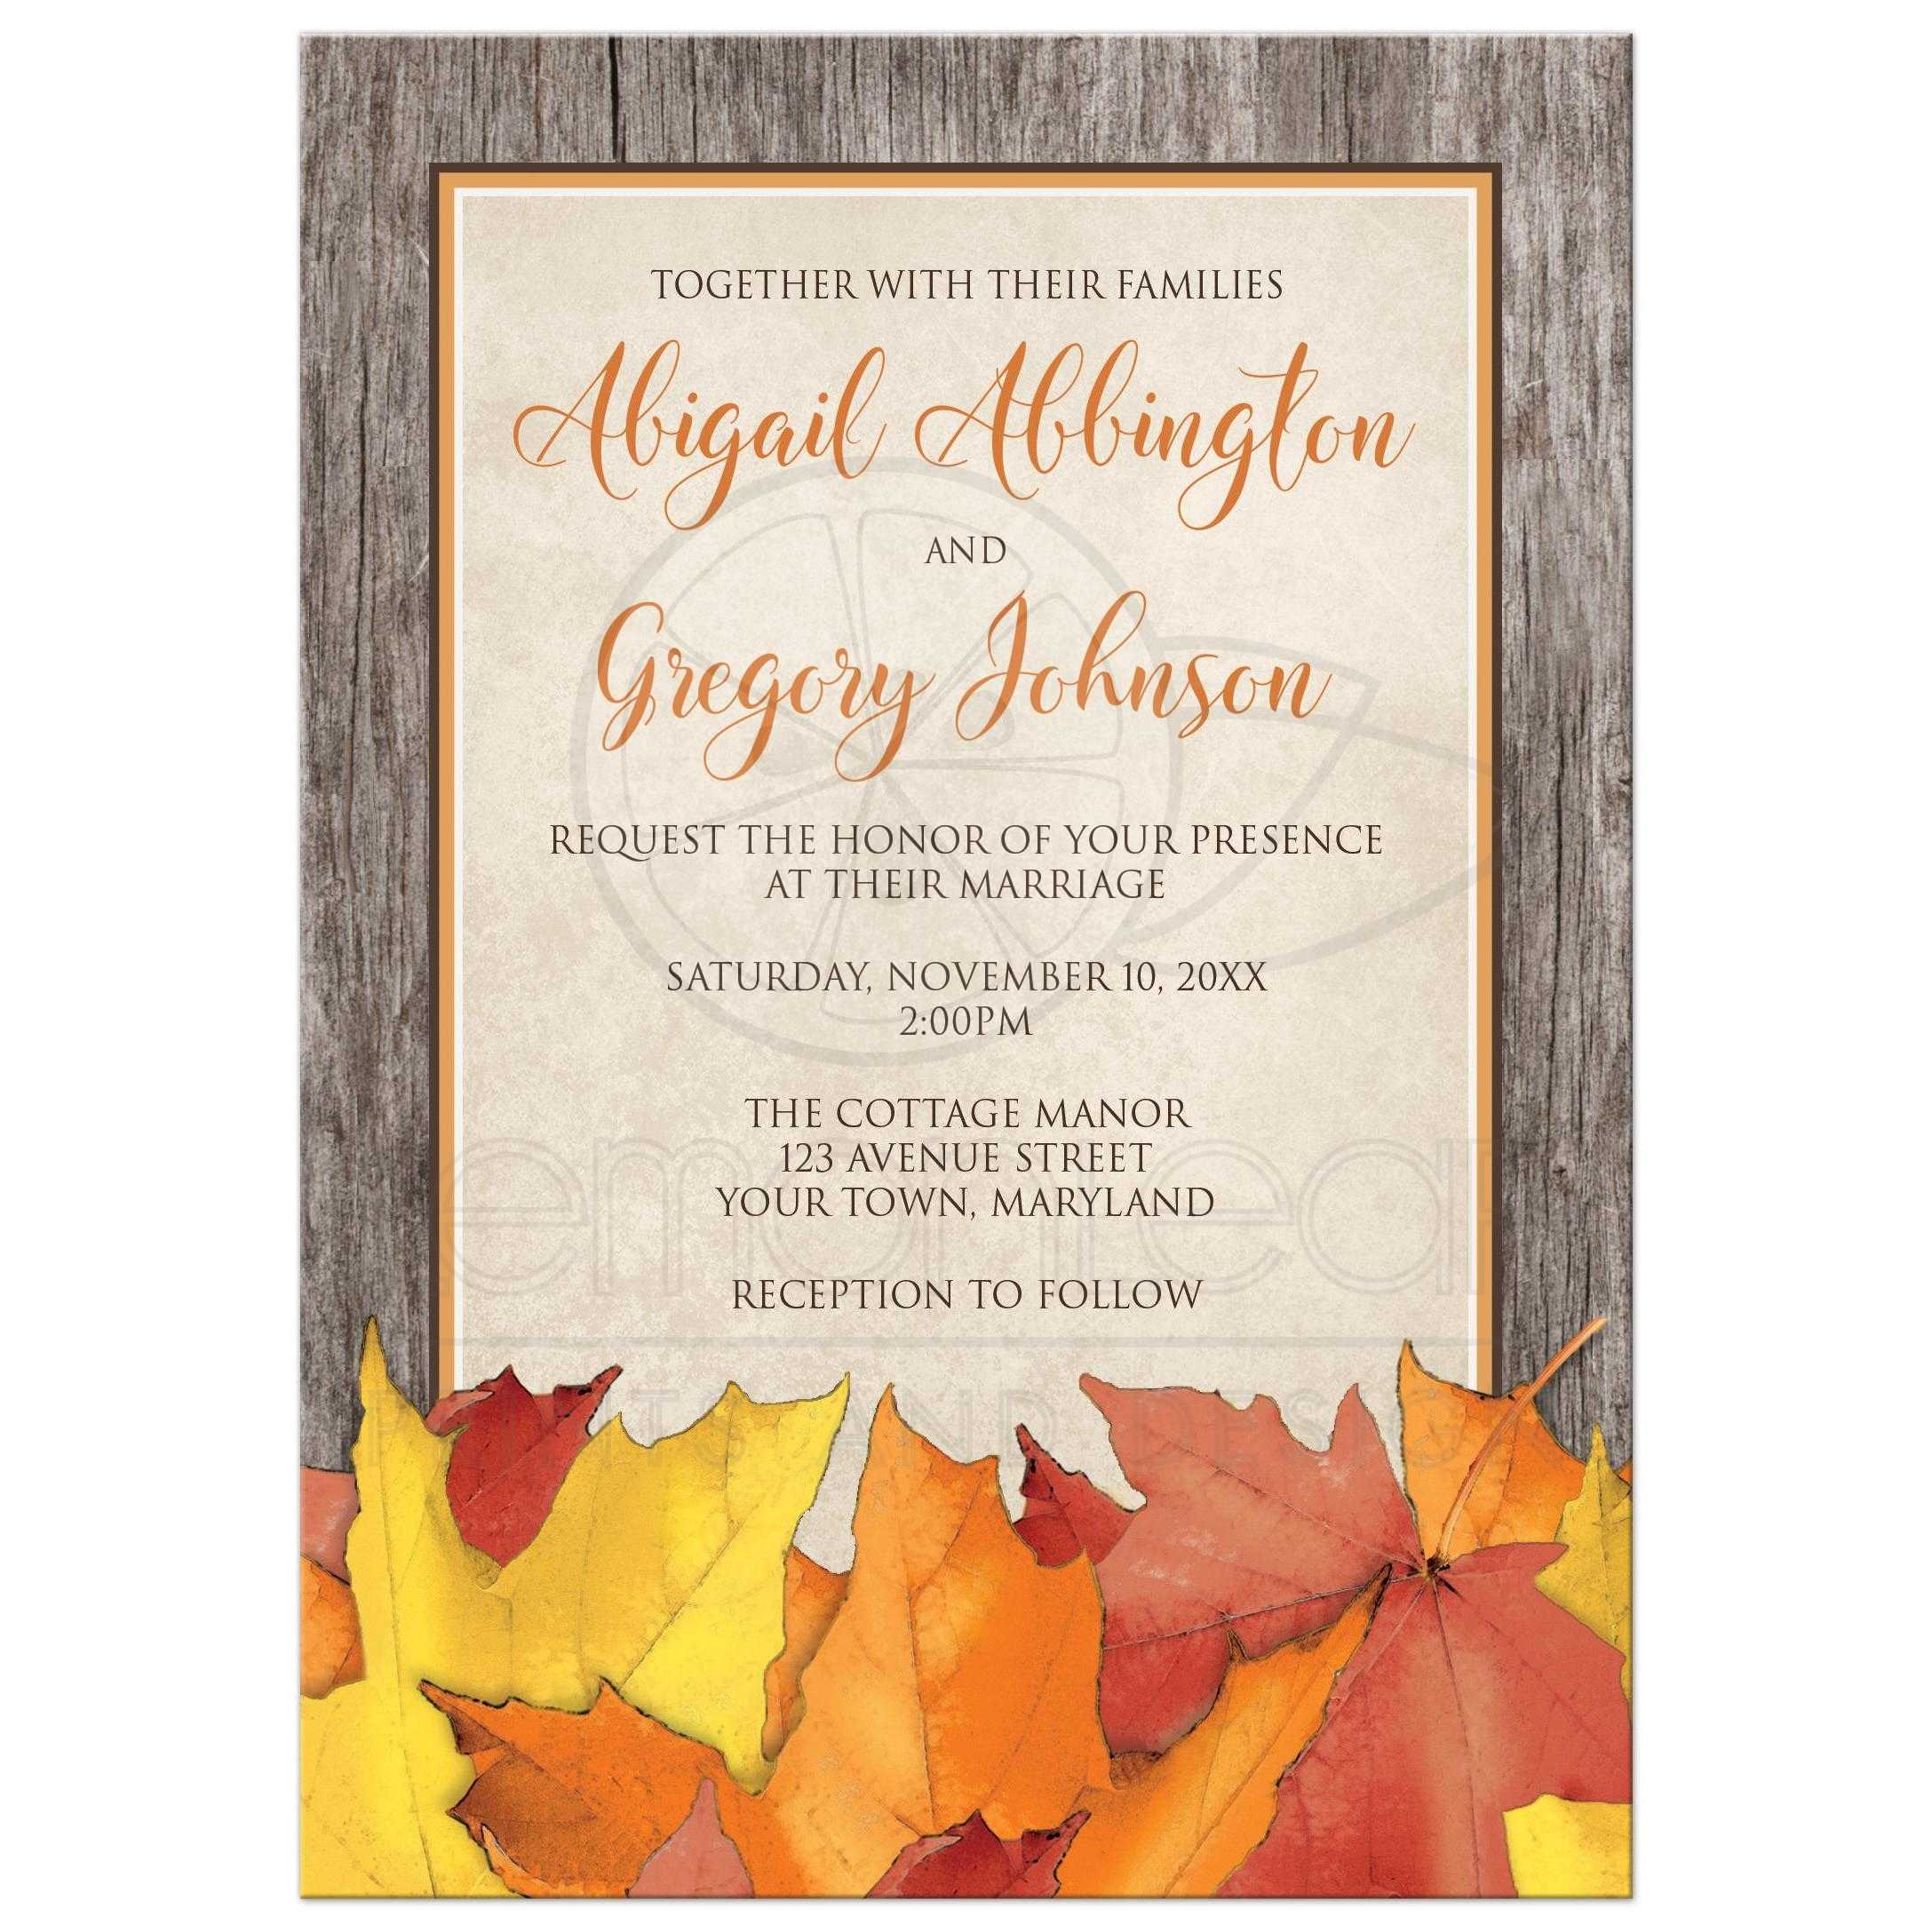 Wedding Invitations - Fall Rustic Wood and Leaves